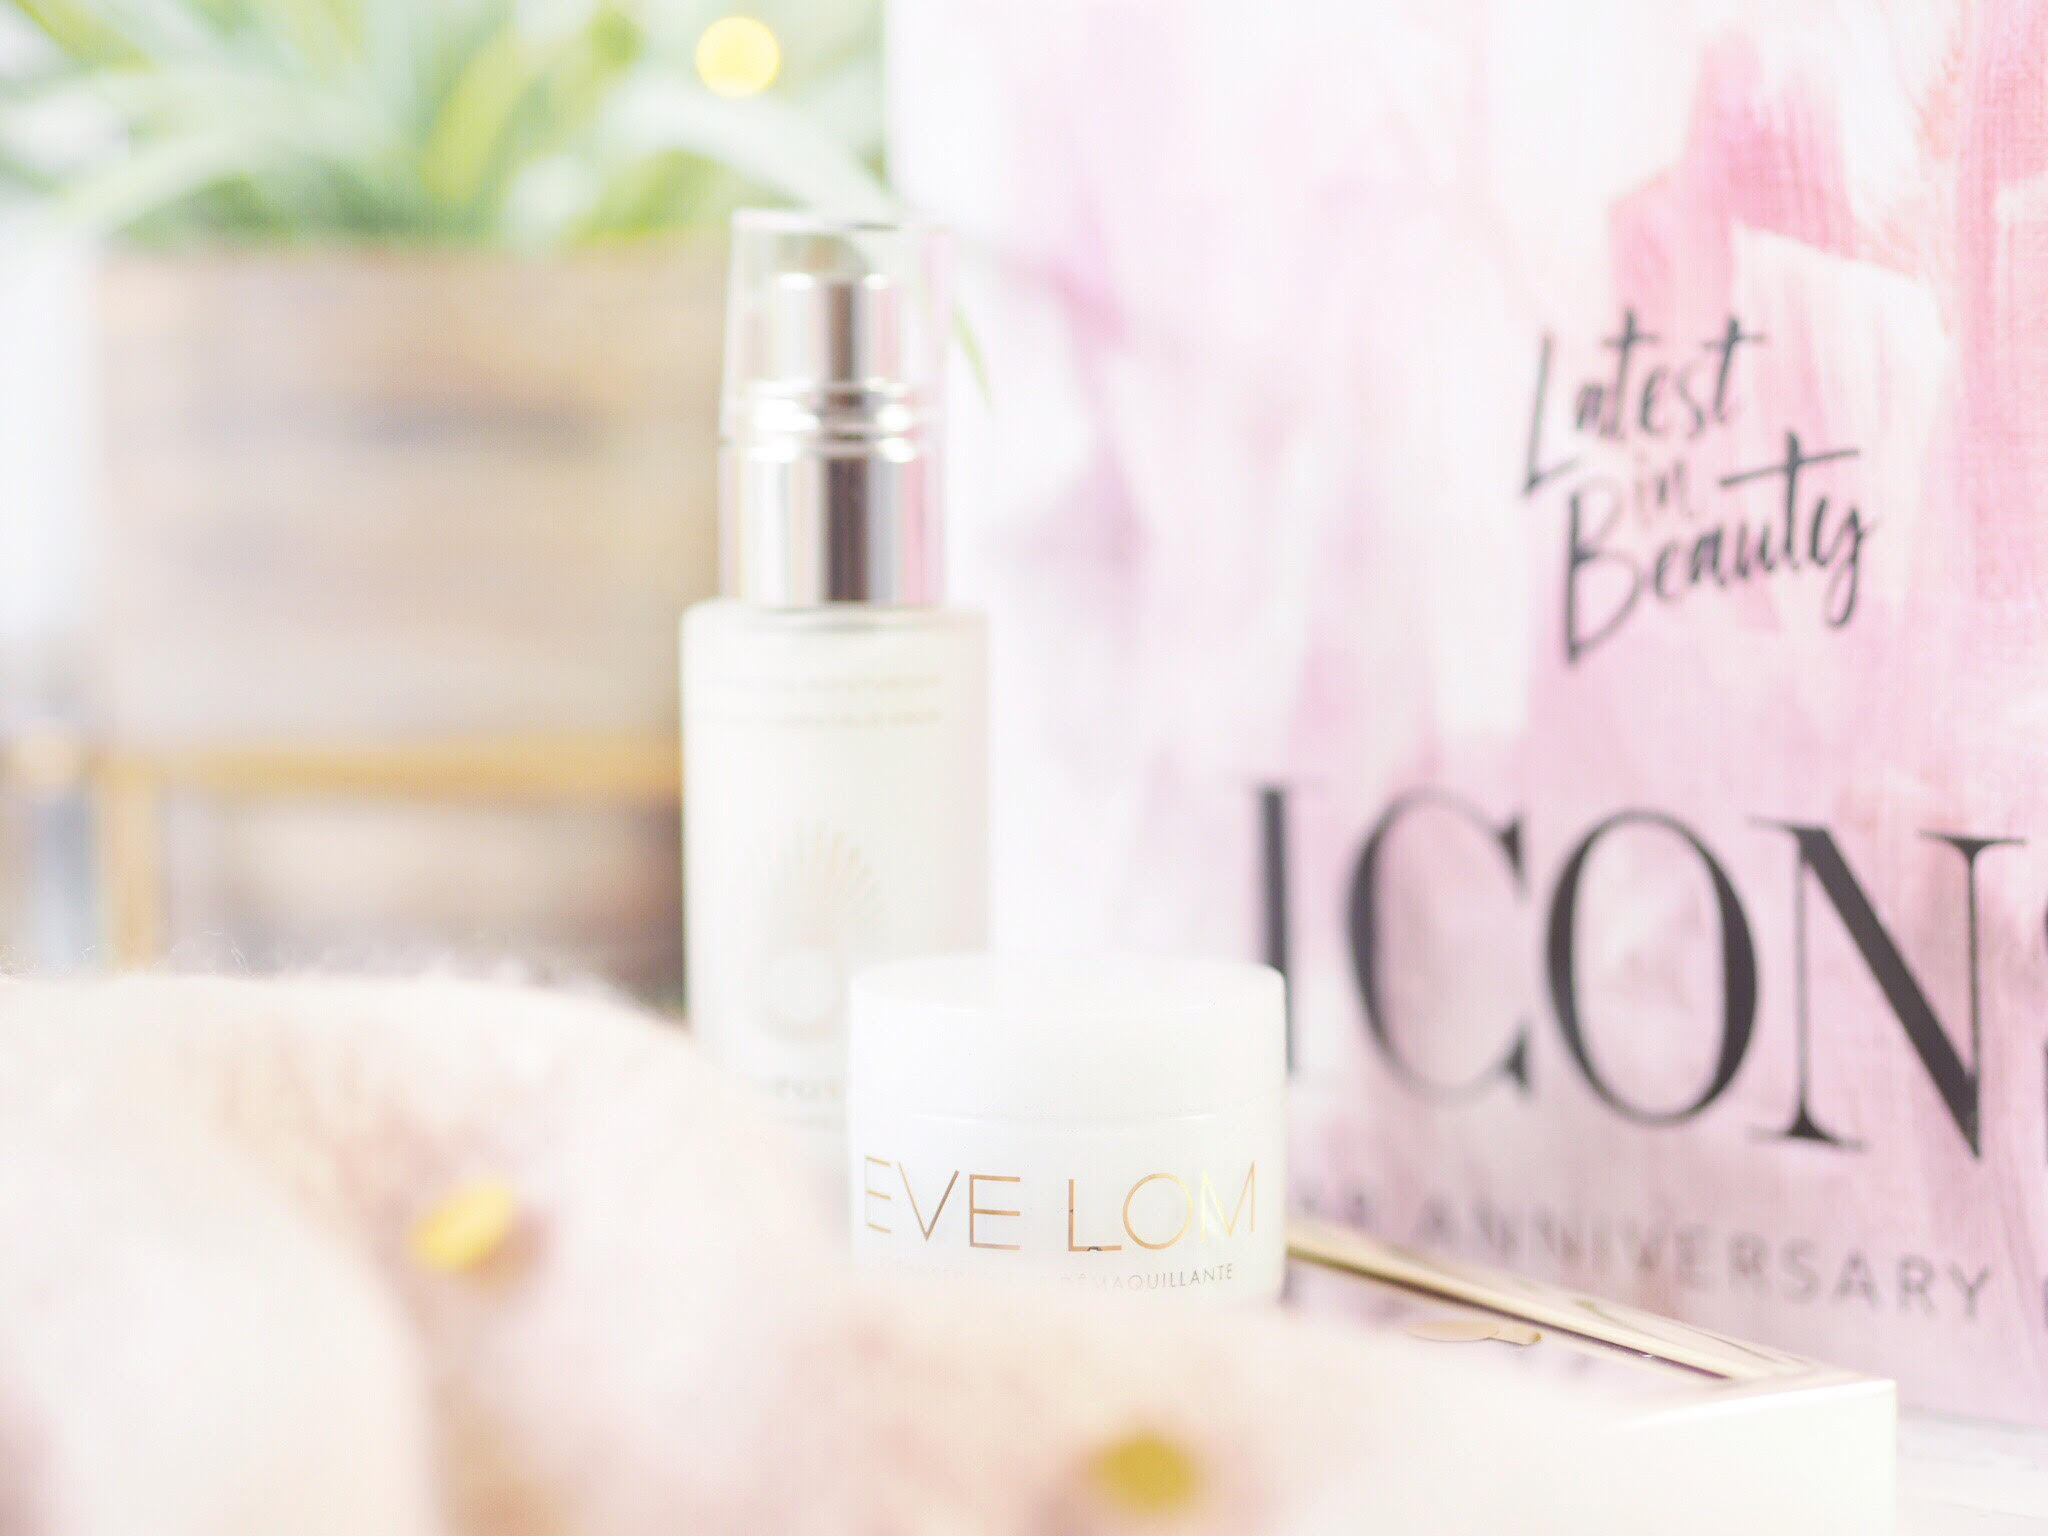 Eve Lom Cleanser & Muslin Cloth